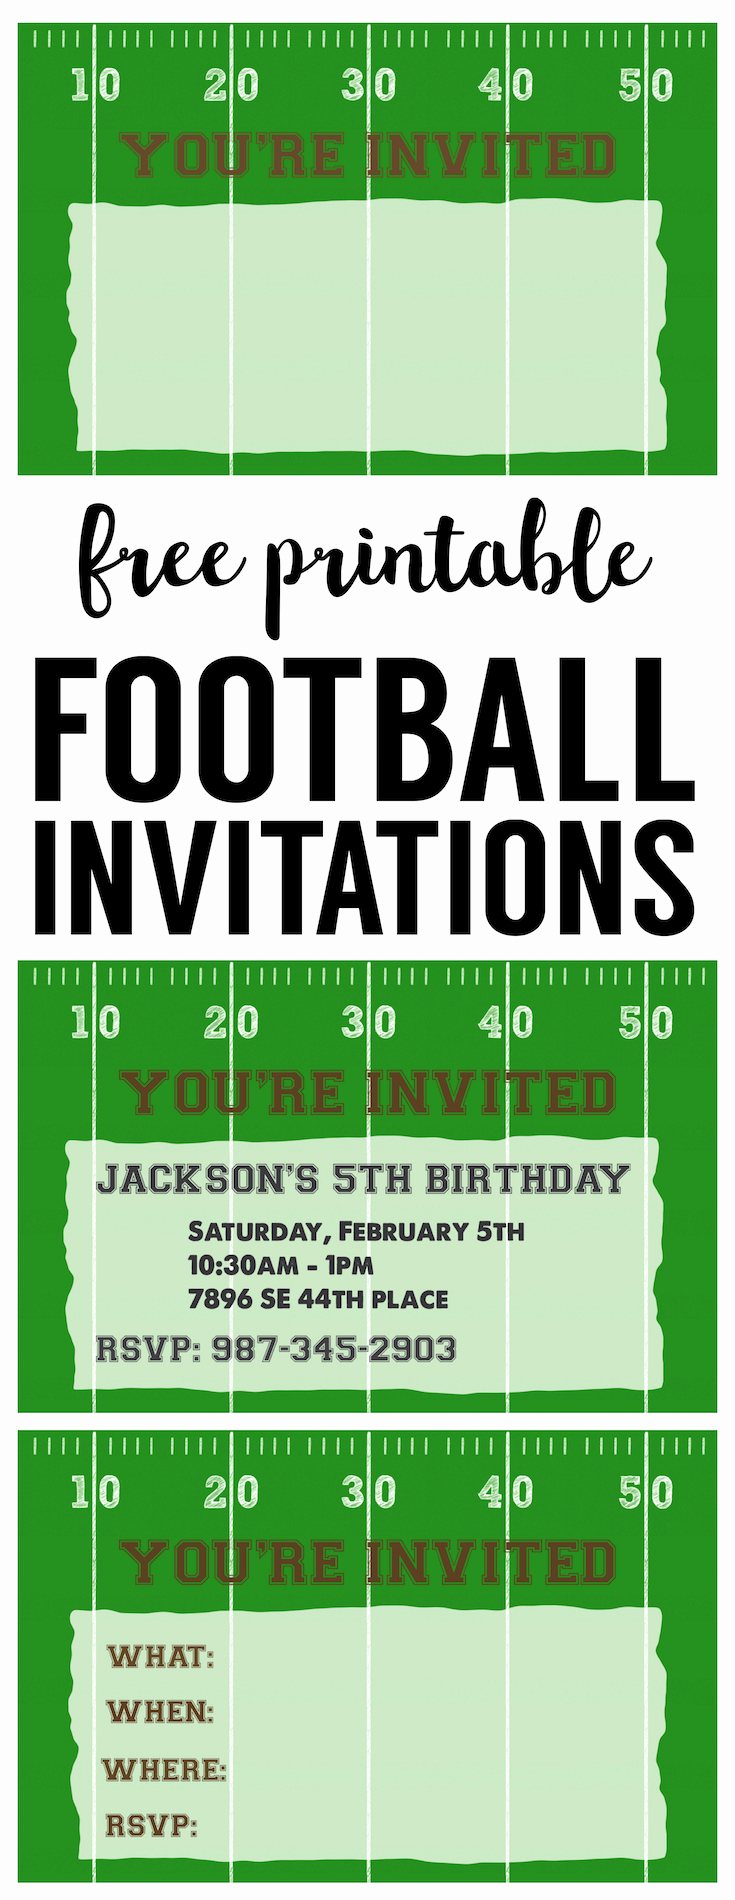 Super Bowl Party Invitation Template Awesome Football Party Invitation Template Free Printable